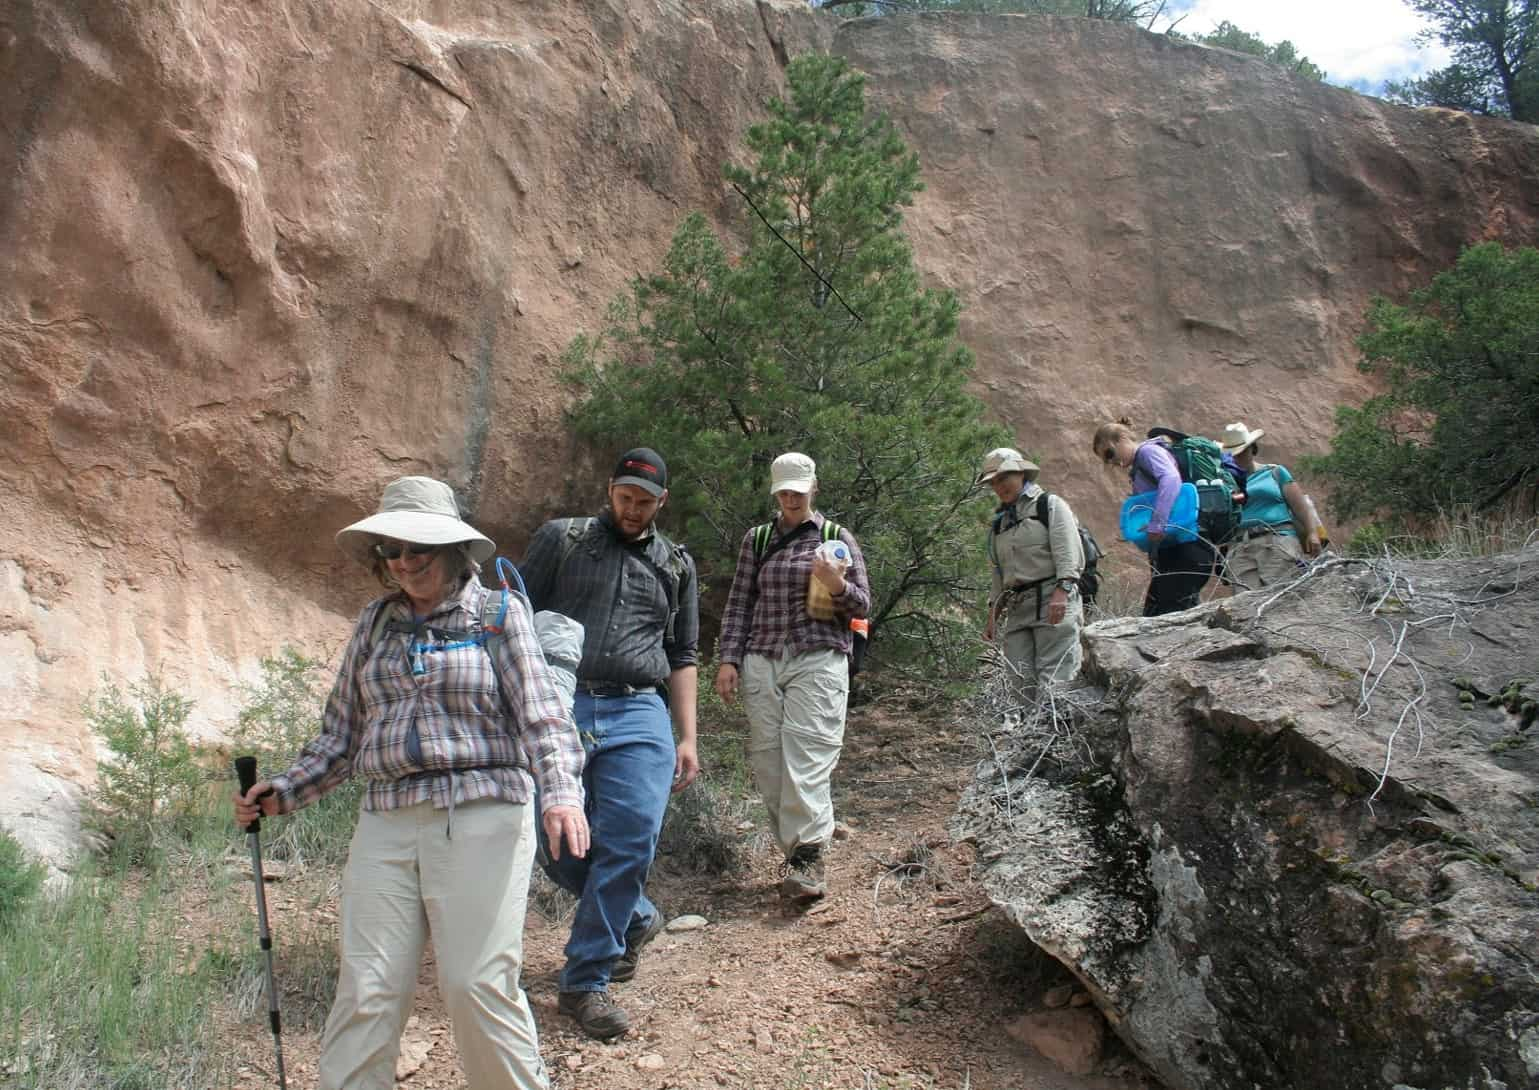 Six adults hiking through through the Zuni mountain landscape.